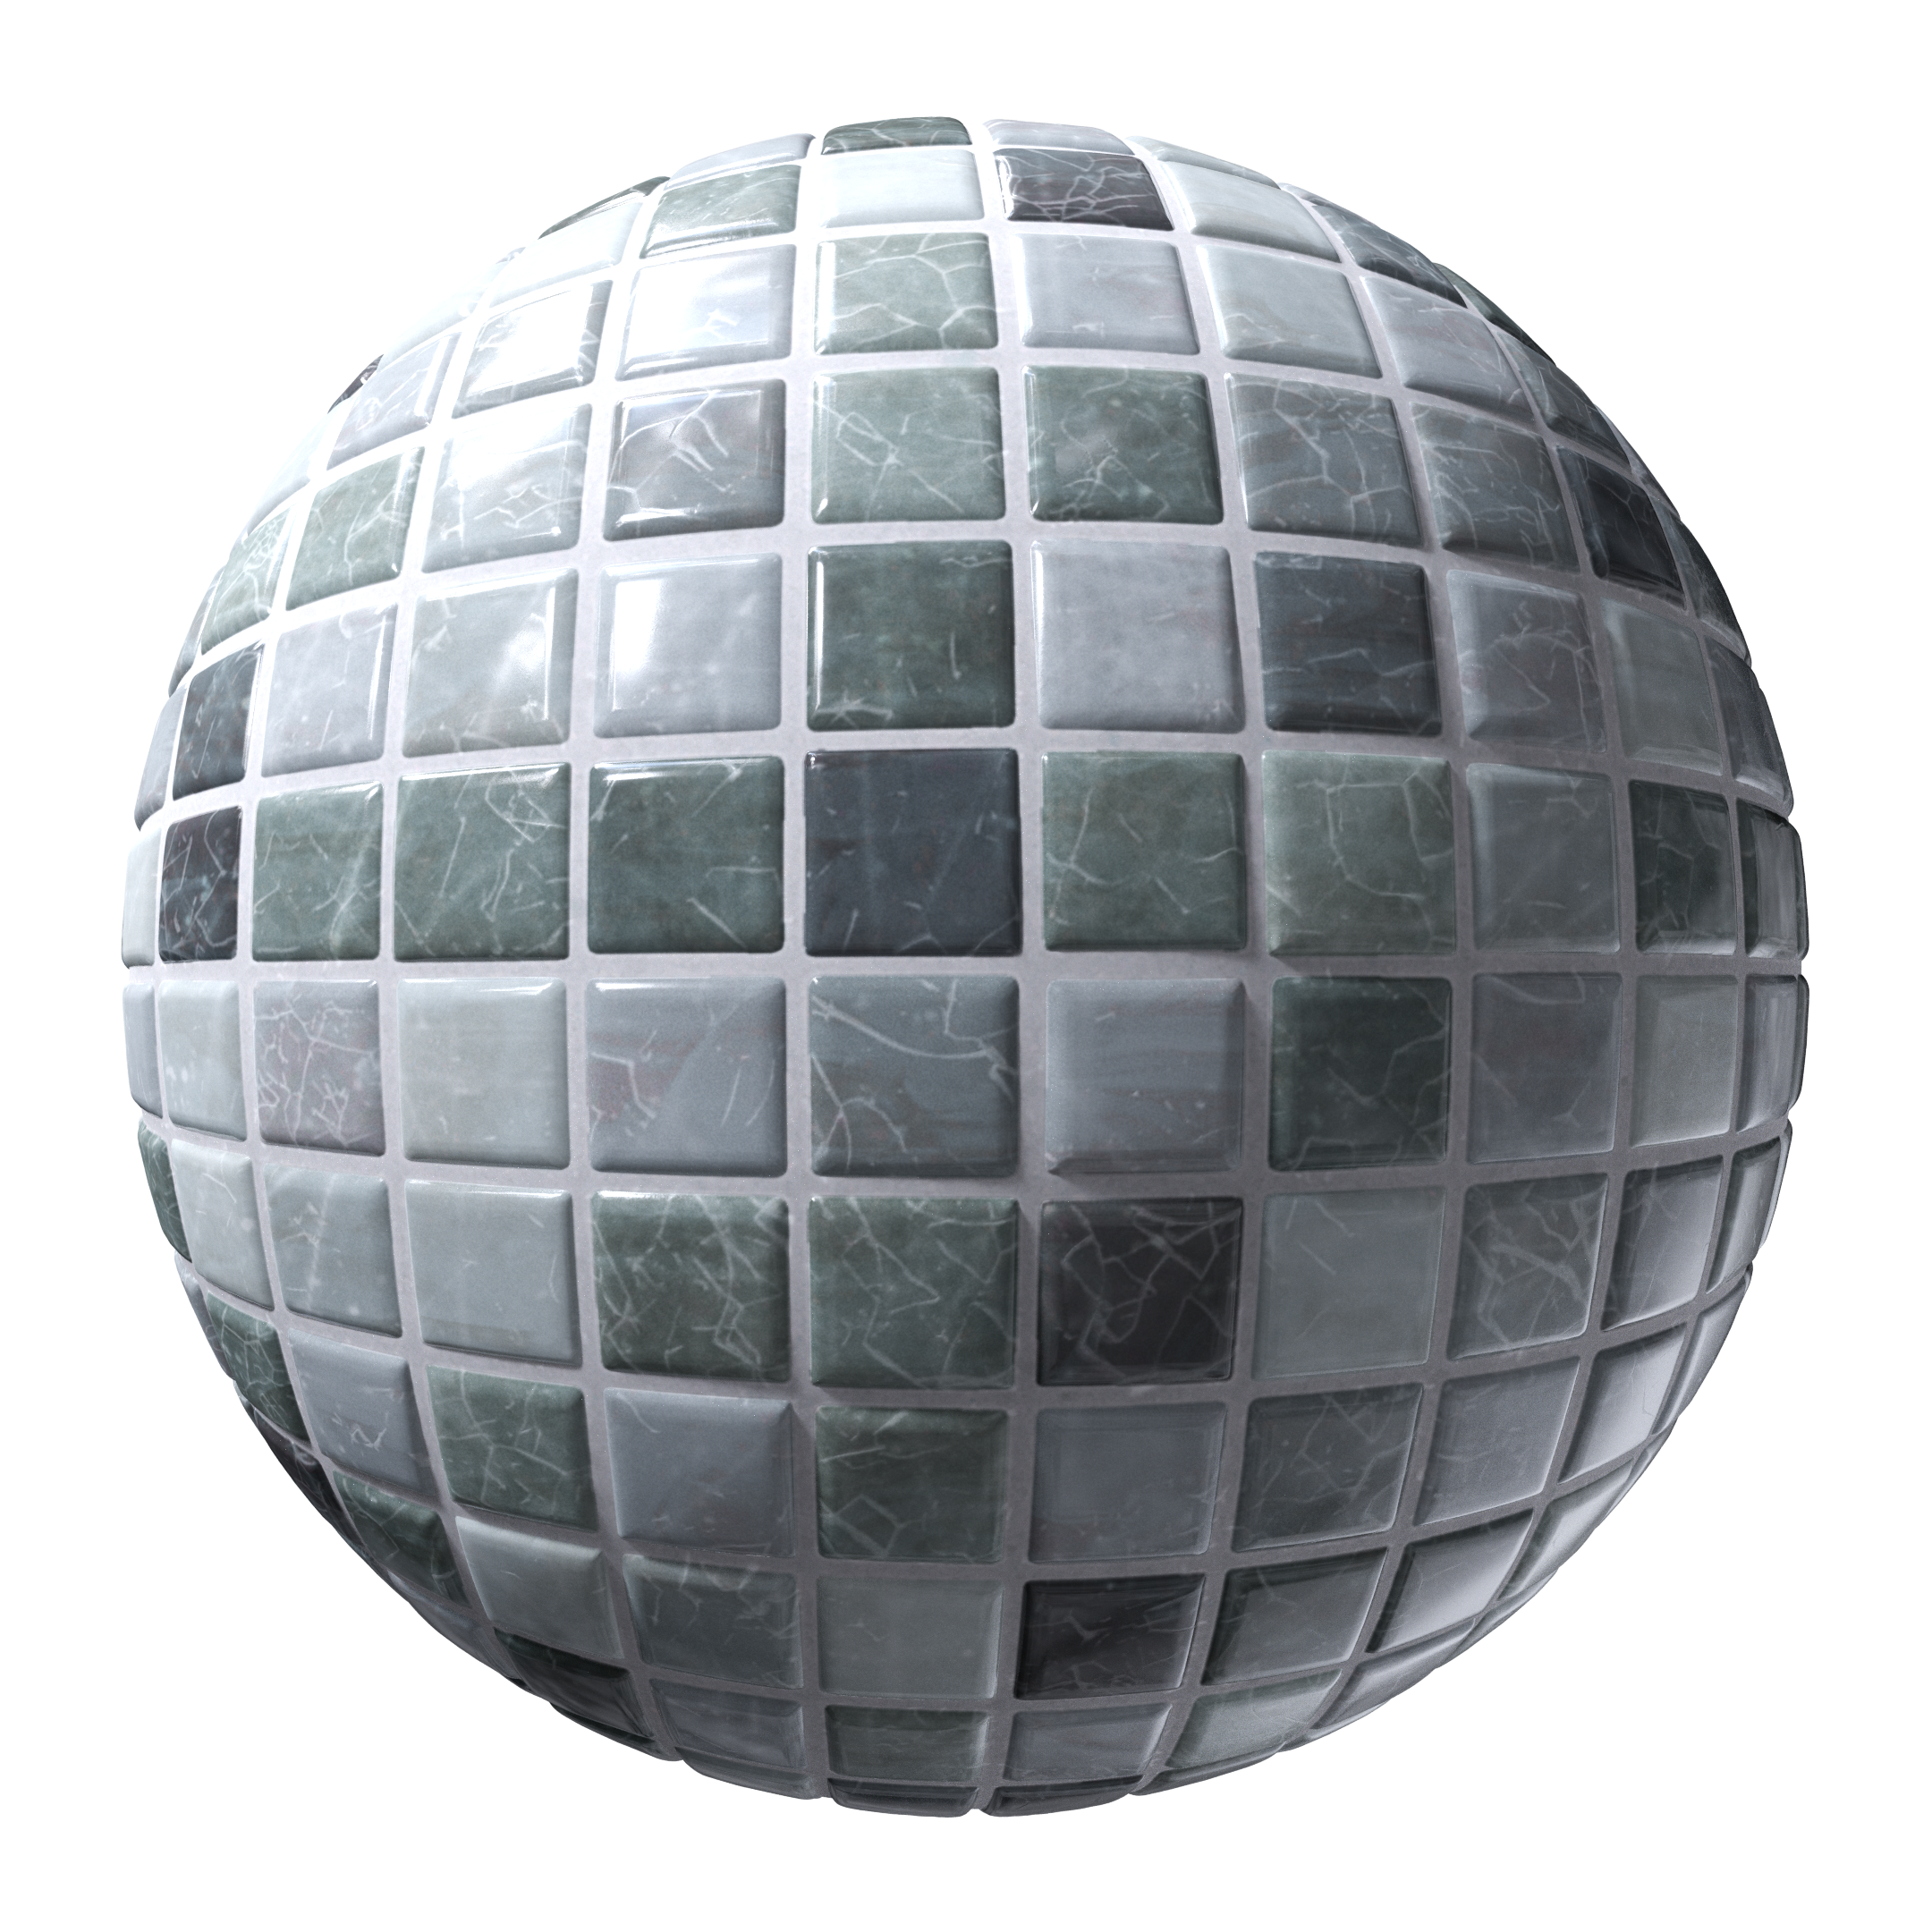 Tcom_Tiles_Glass2_thumb1.png